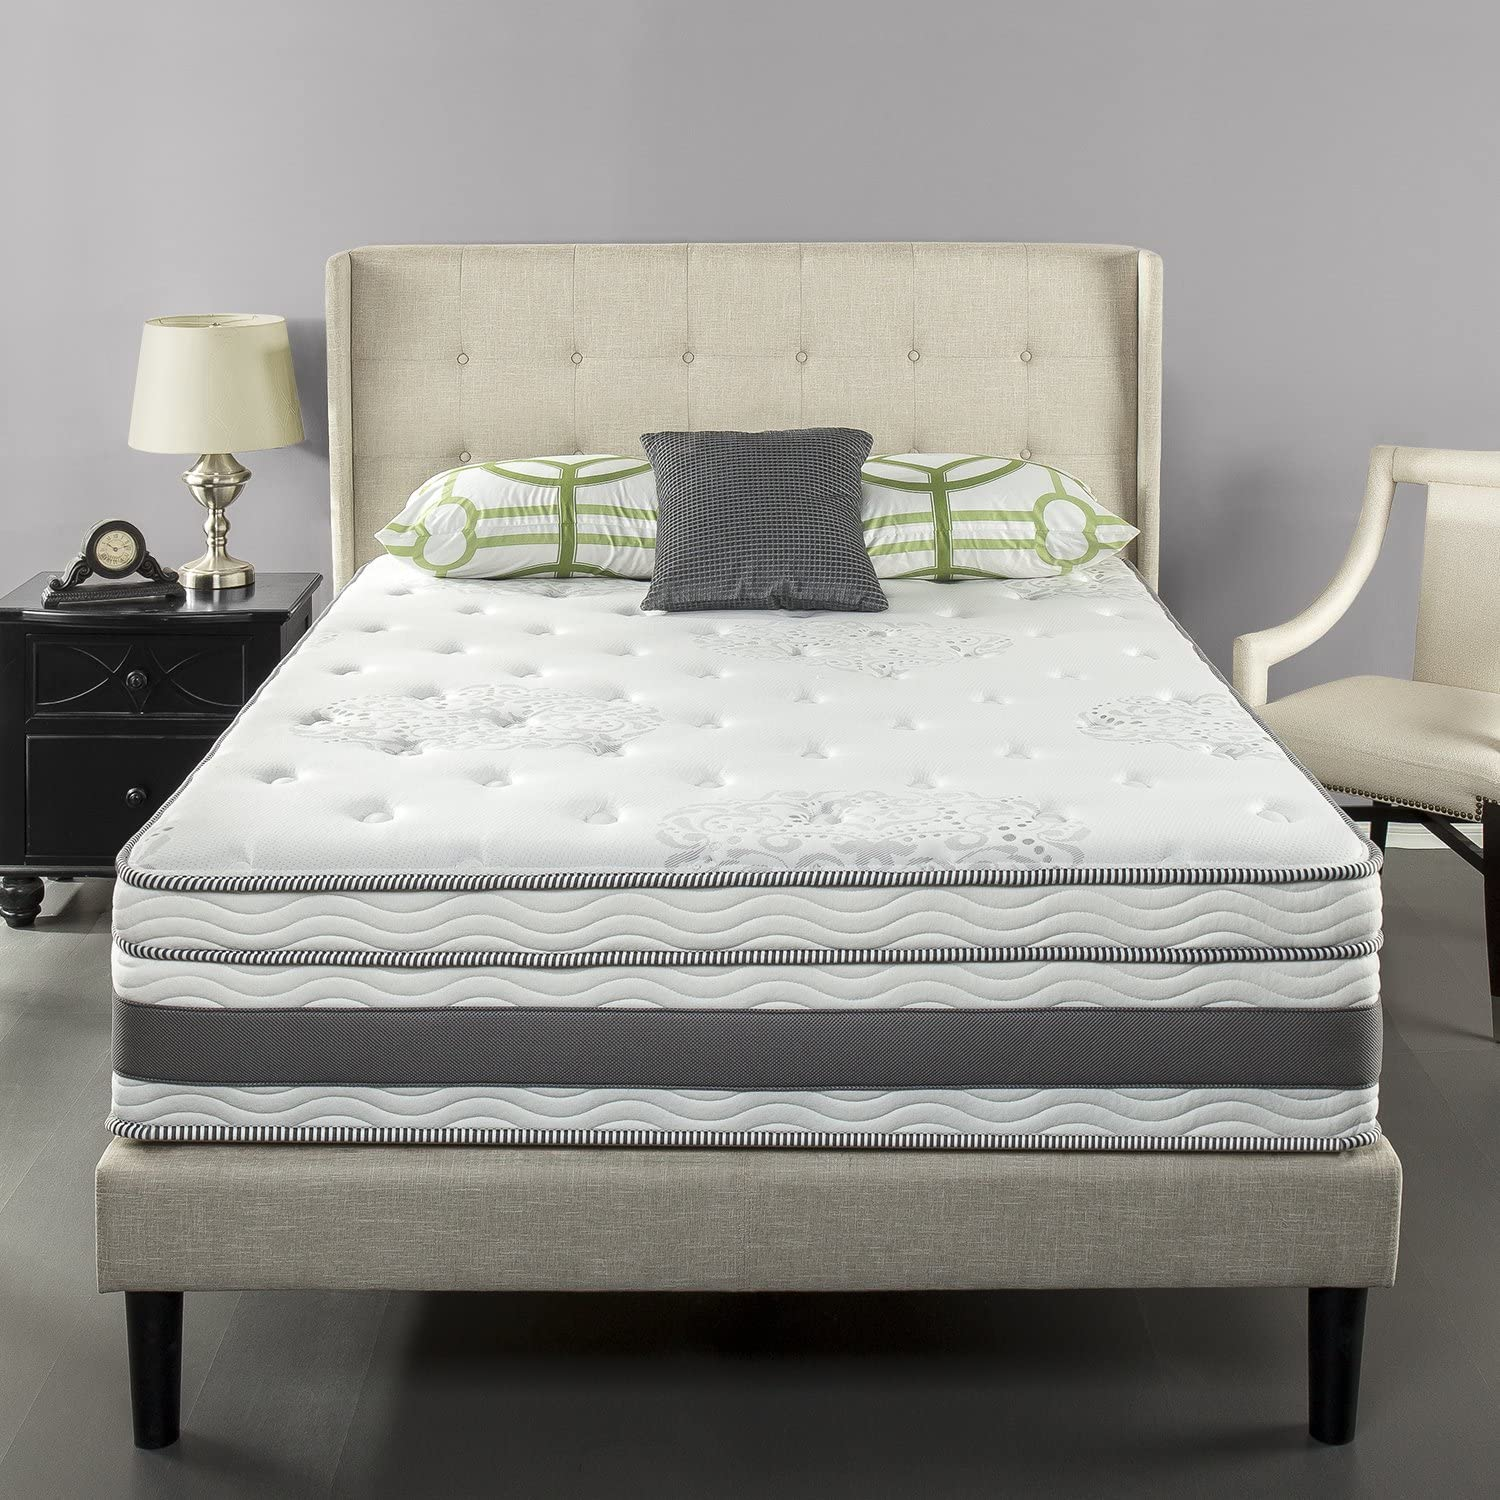 benefits of a thick mattress